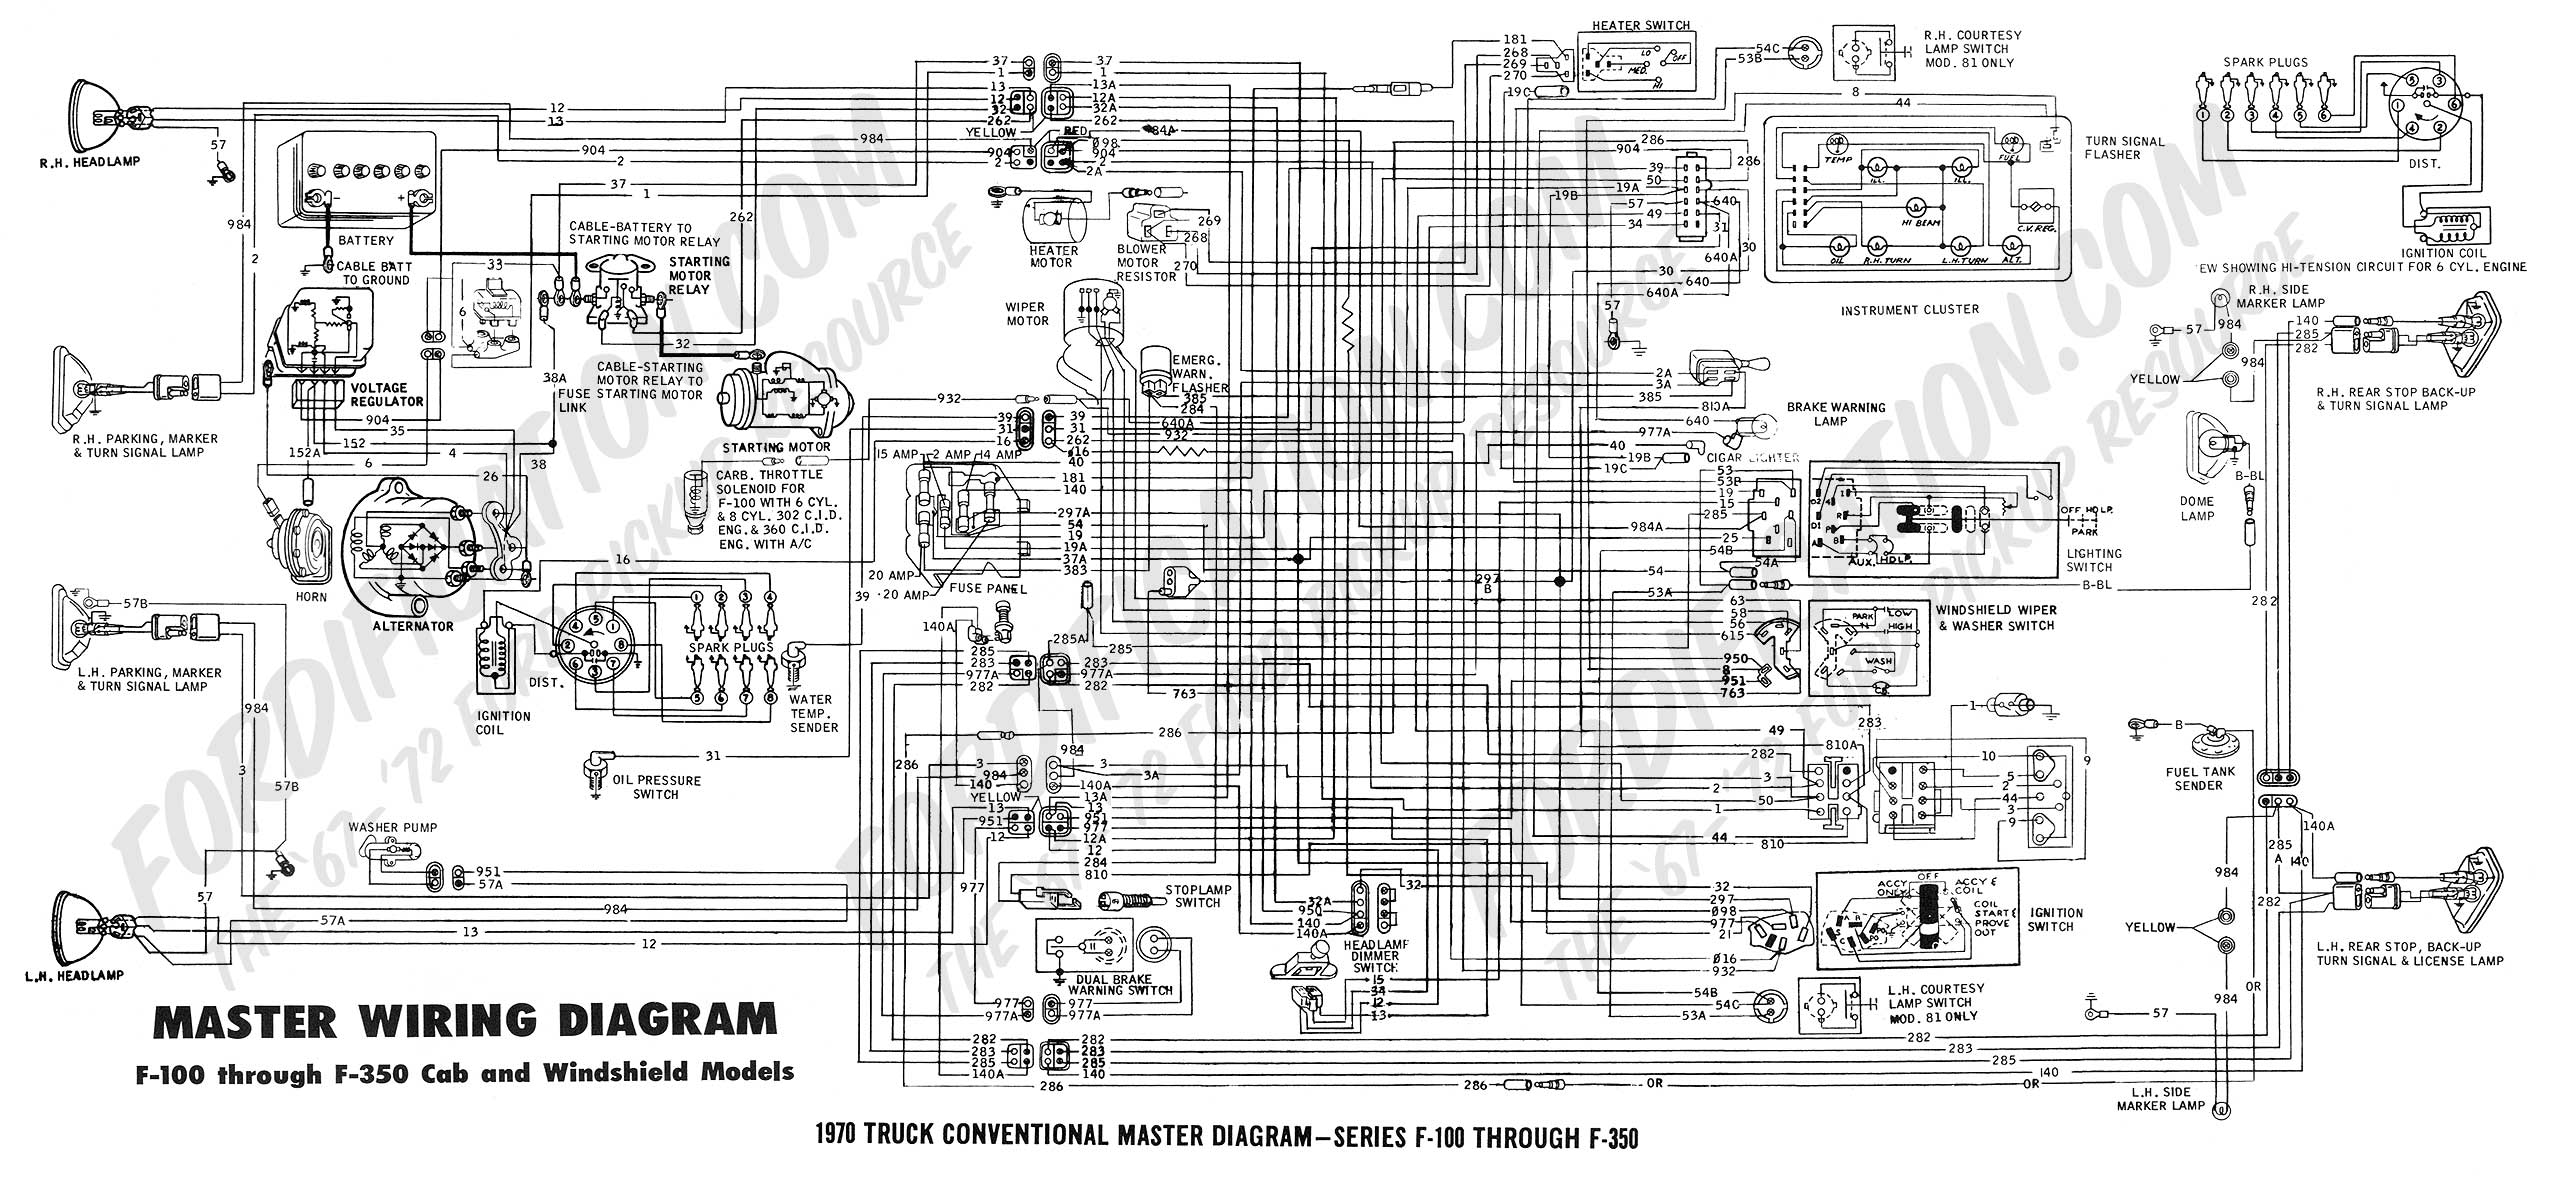 wiring diagrams enable technicians to warn winch contactor help alternator harness ford truck enthusiasts